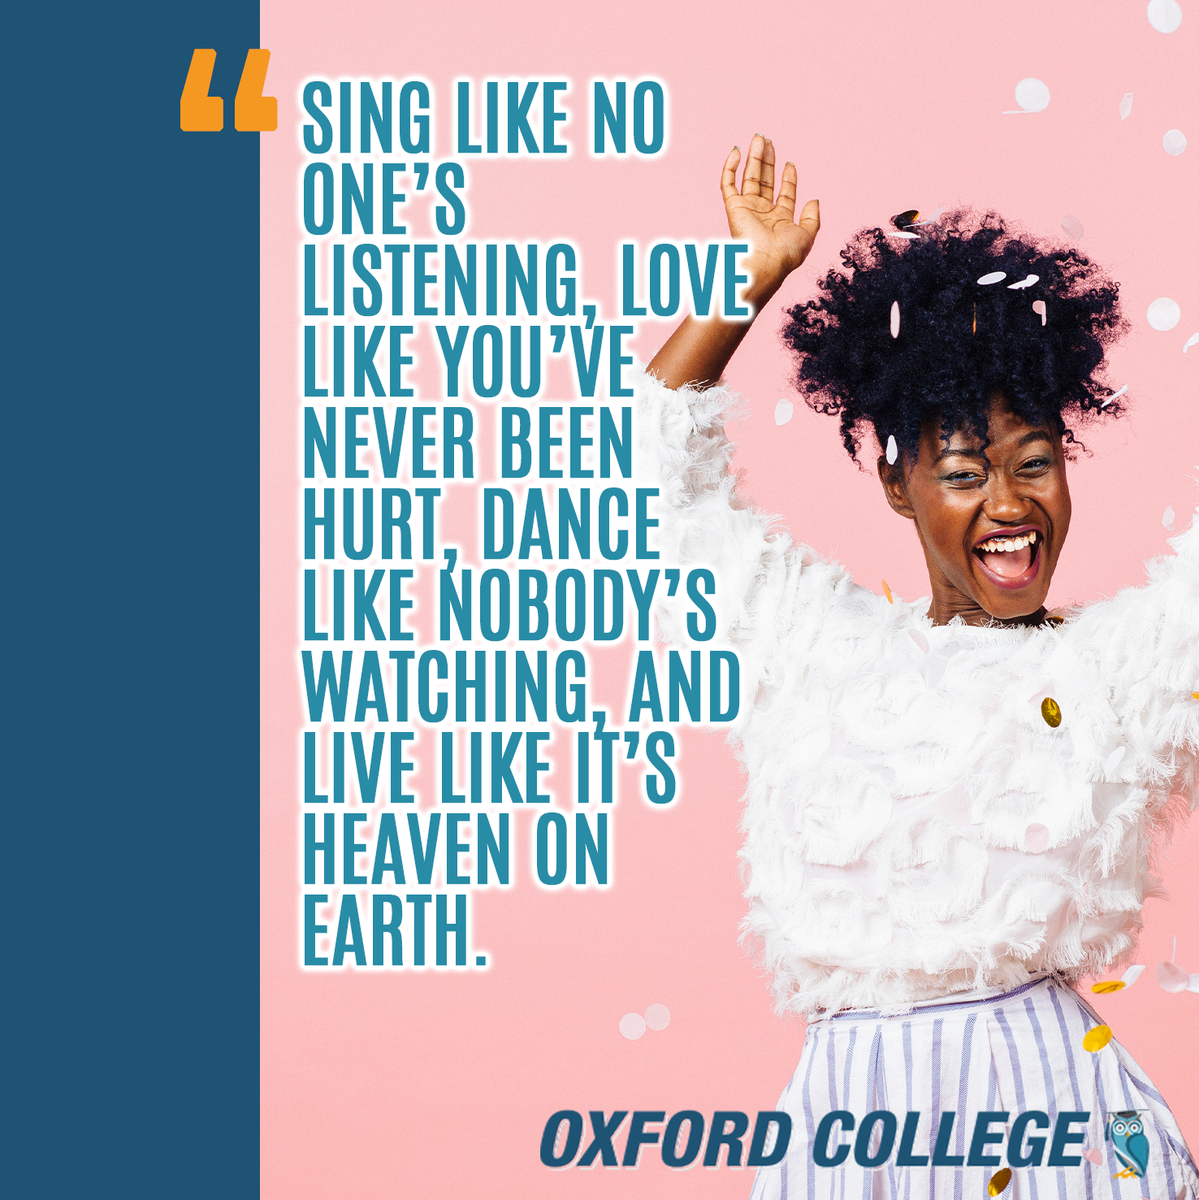 Happy Friday!   Don't forget to sing, dance and love today .  #FridayFunday #OxfordCollege #OxfordEdu #quote #quoteoftheday #smile #lovepic.twitter.com/pIHYOW2dRh